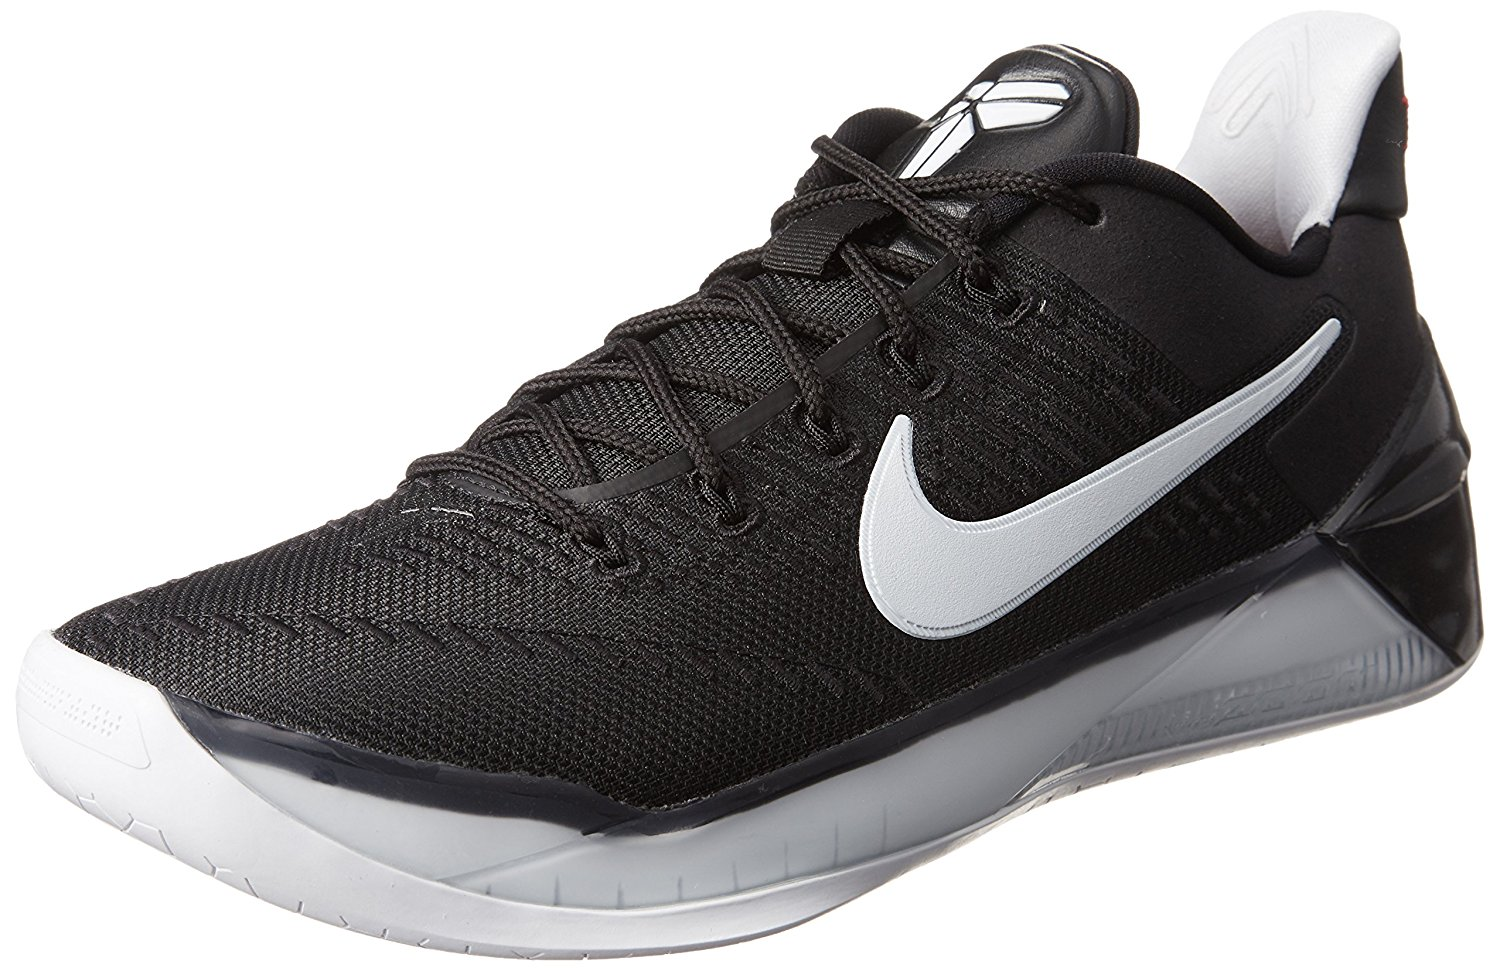 new product 66b8a d7a9a Get Quotations · Nike Men s Kobe A.D. Basketball Shoes Black White 852425- 001